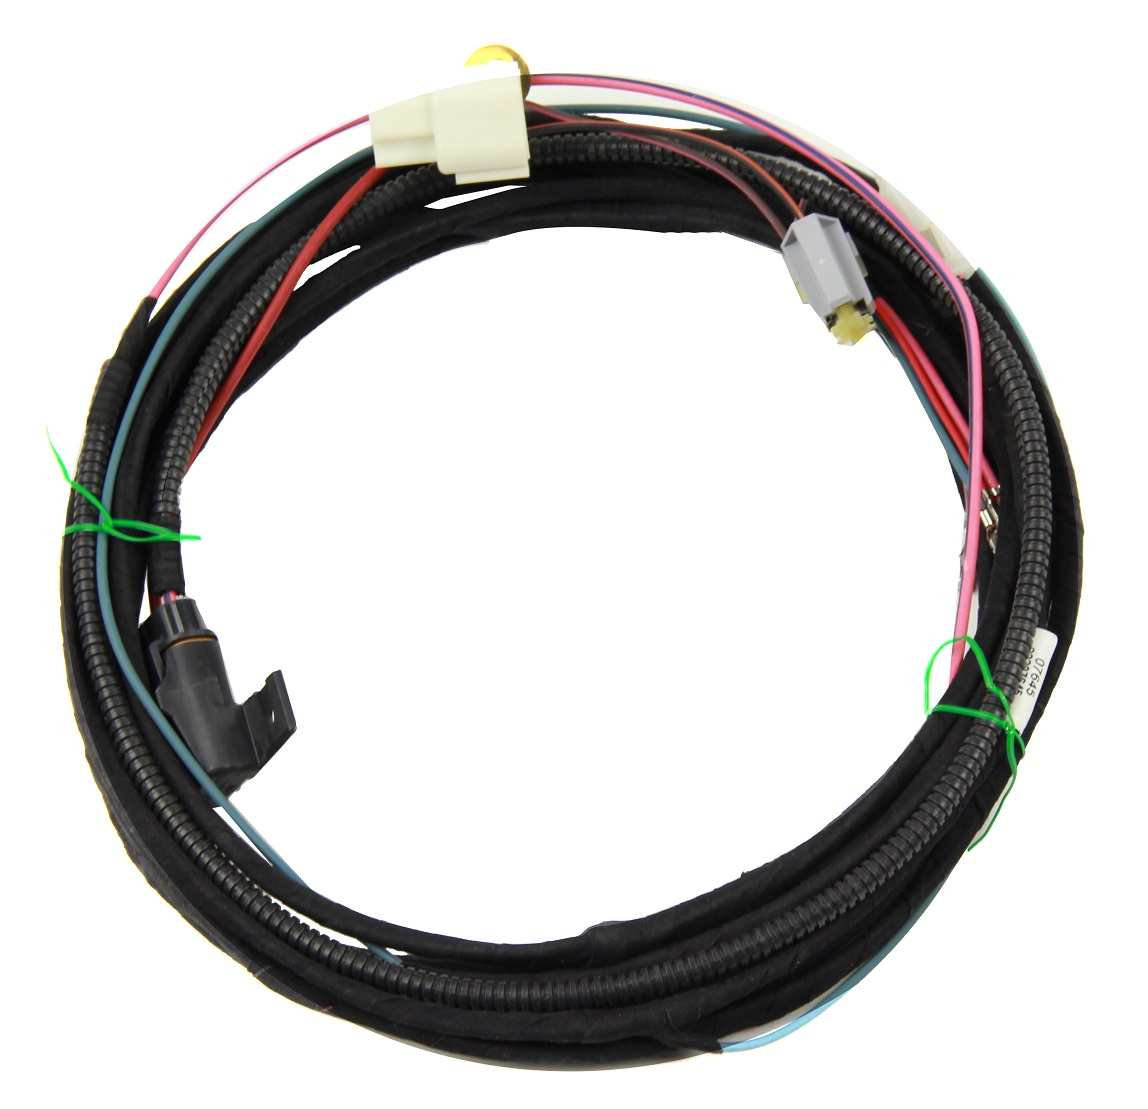 adapter-26  Uconnect Wire Harness on uconnect ra4, uconnect in edmond, uconnect tutorial, uconnect log in, uconnect compatible devices, uconnect not working, uconnect radios, uconnect remote start,